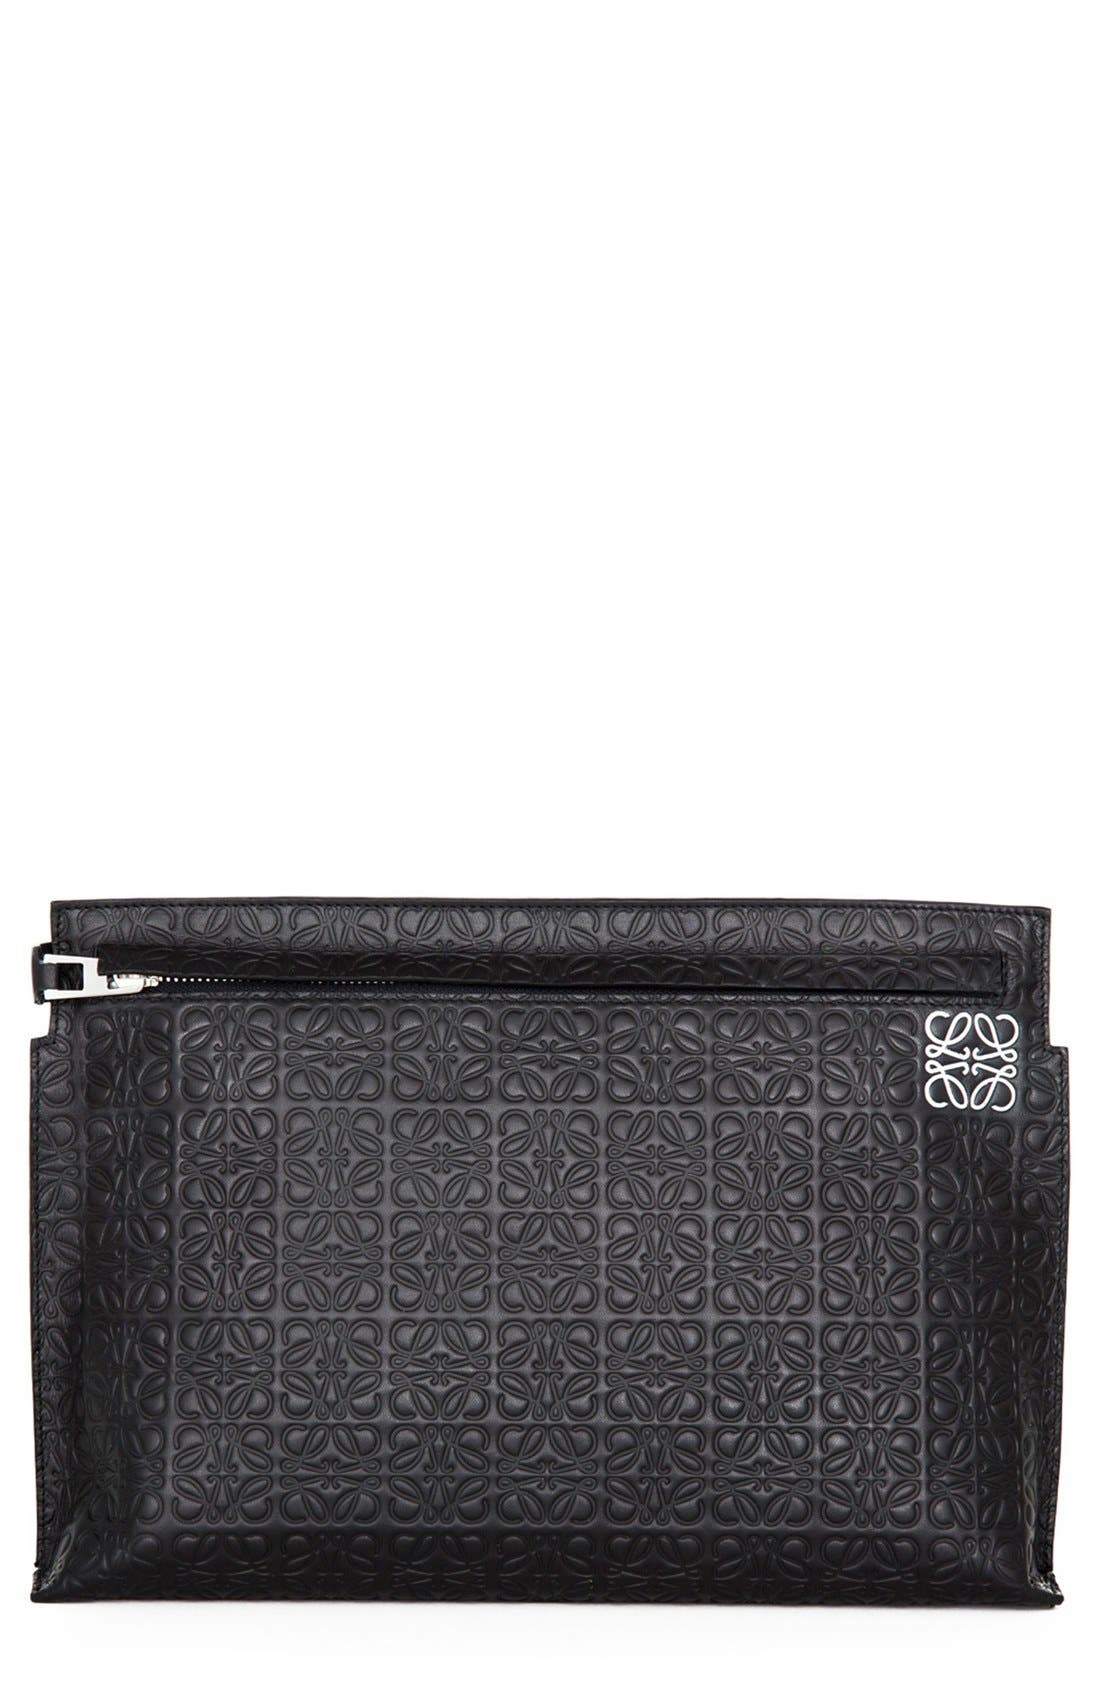 Main Image - Loewe Large Logo Embossed Calfskin Leather Pouch